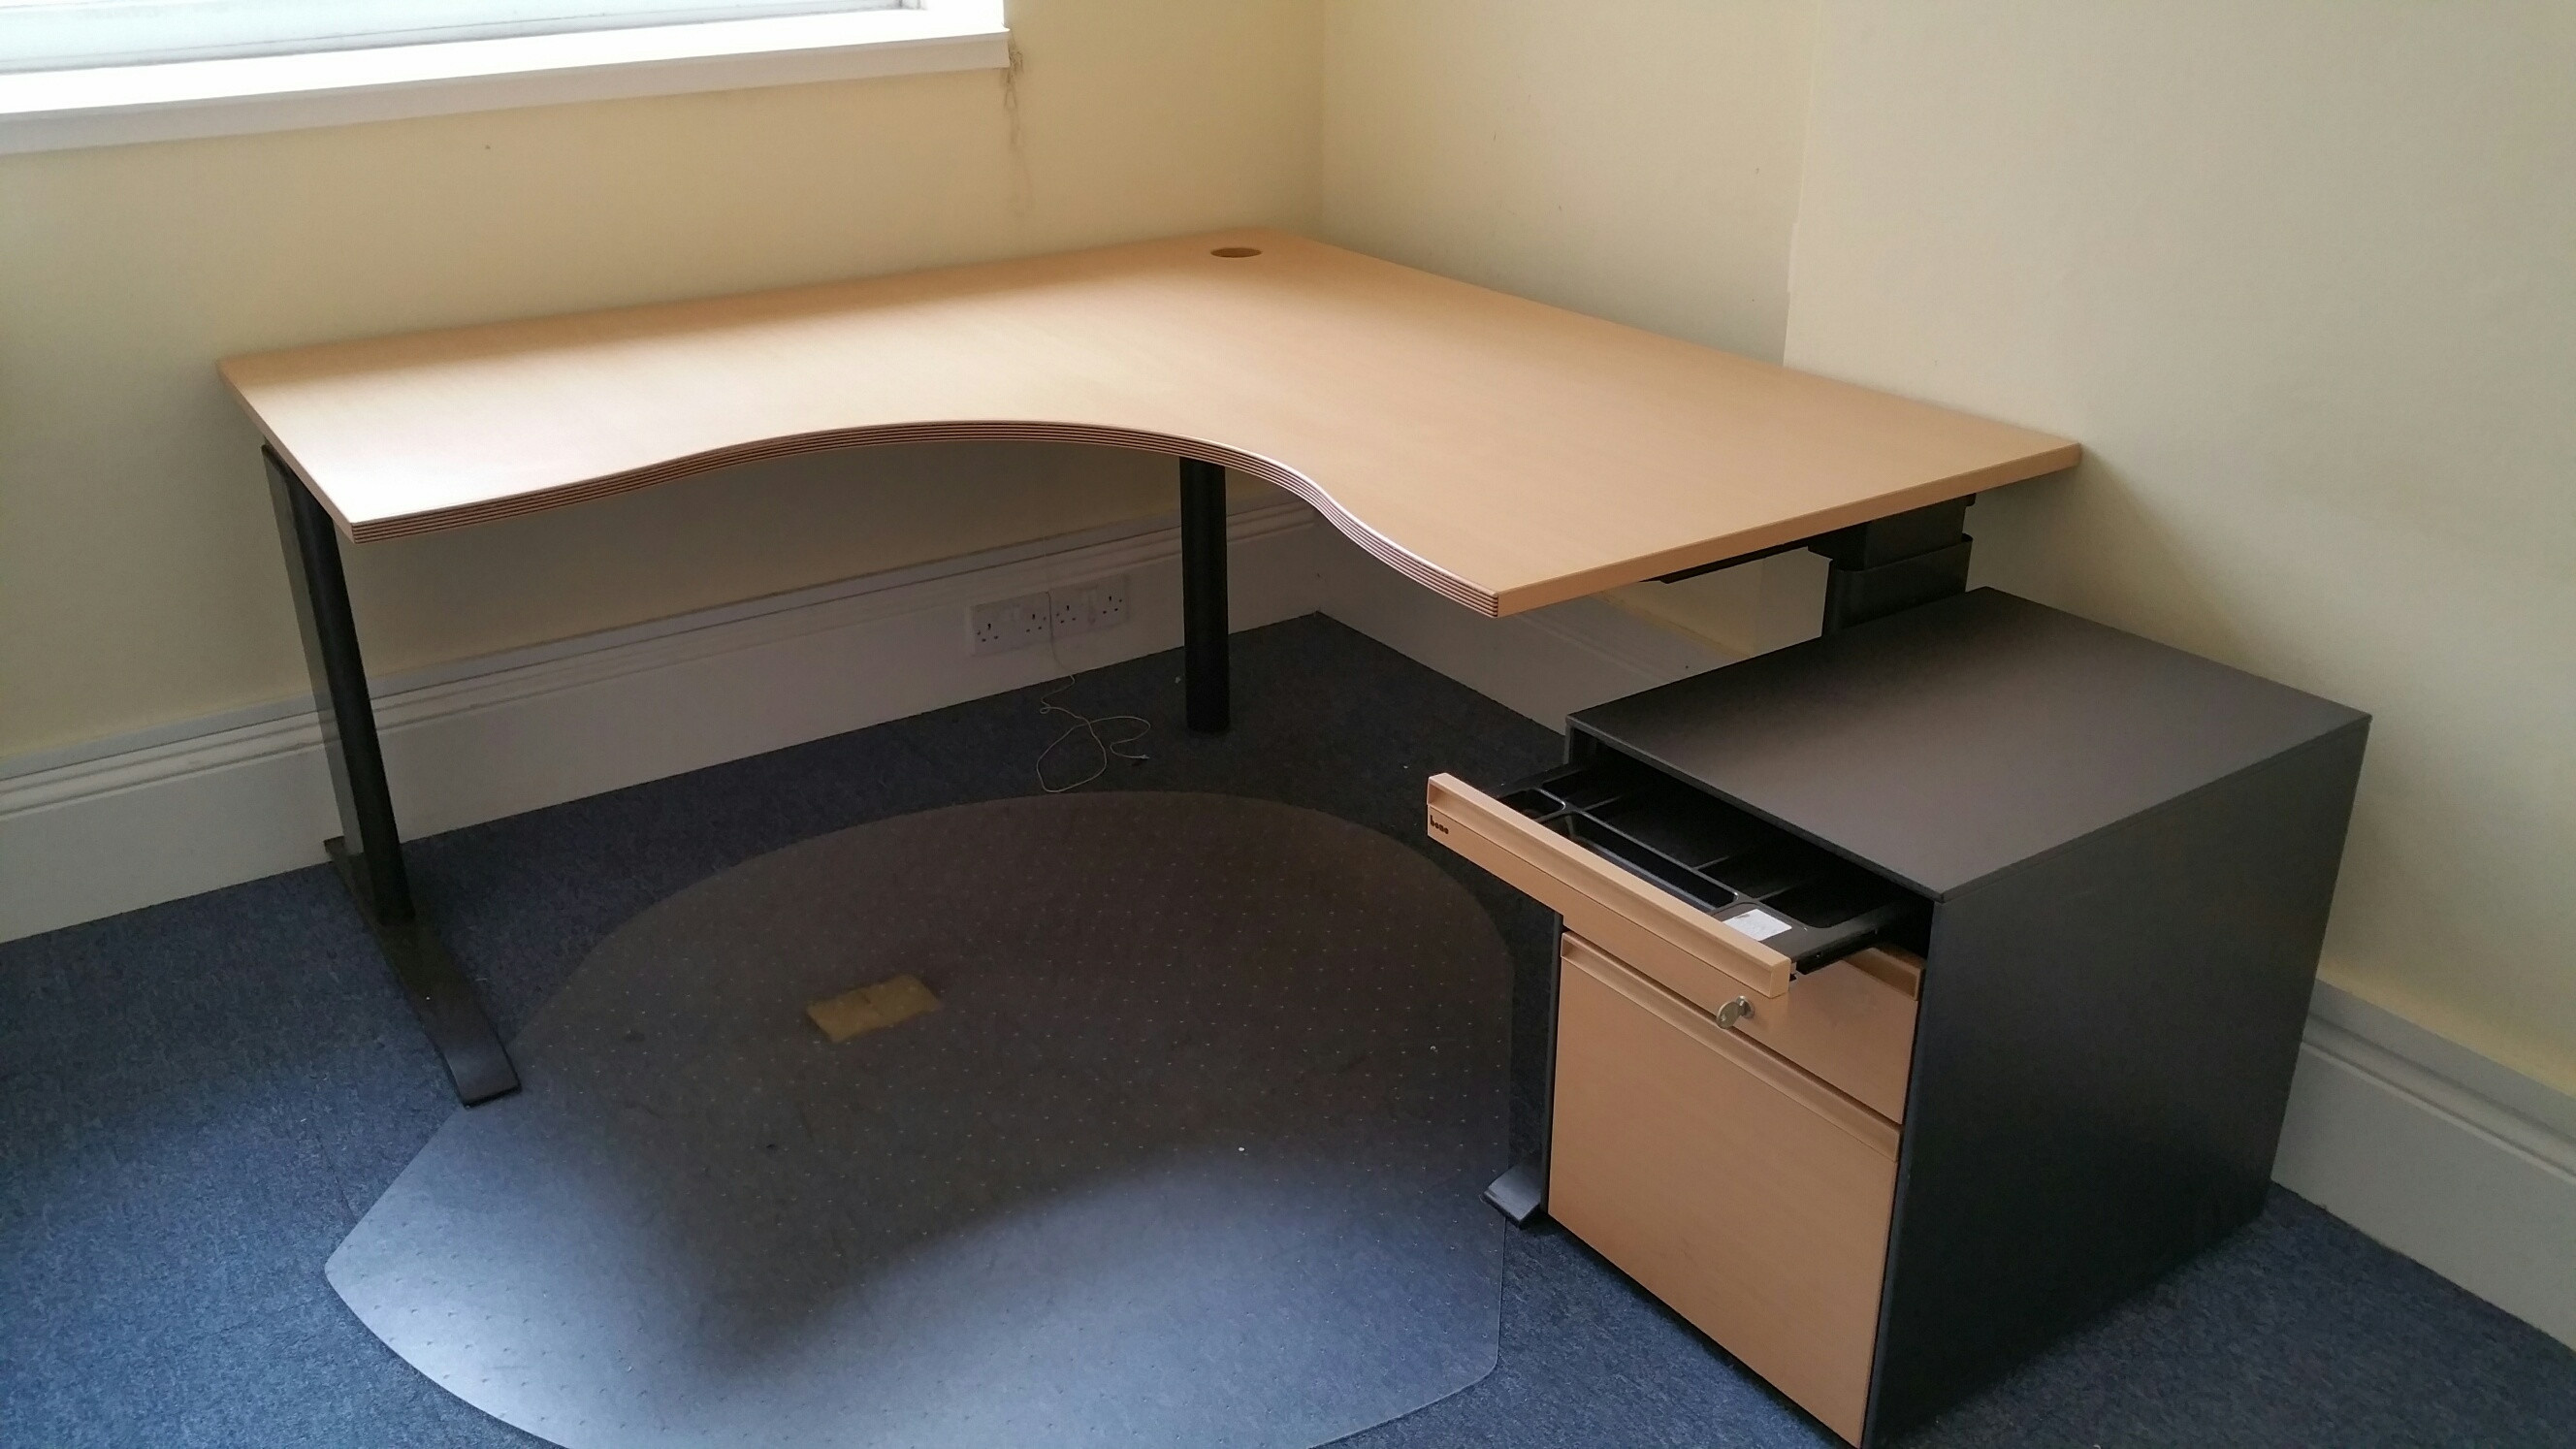 Best ideas about Office Furniture For Sale . Save or Pin USED OFFICE FURNITURE FOR SALE Now.